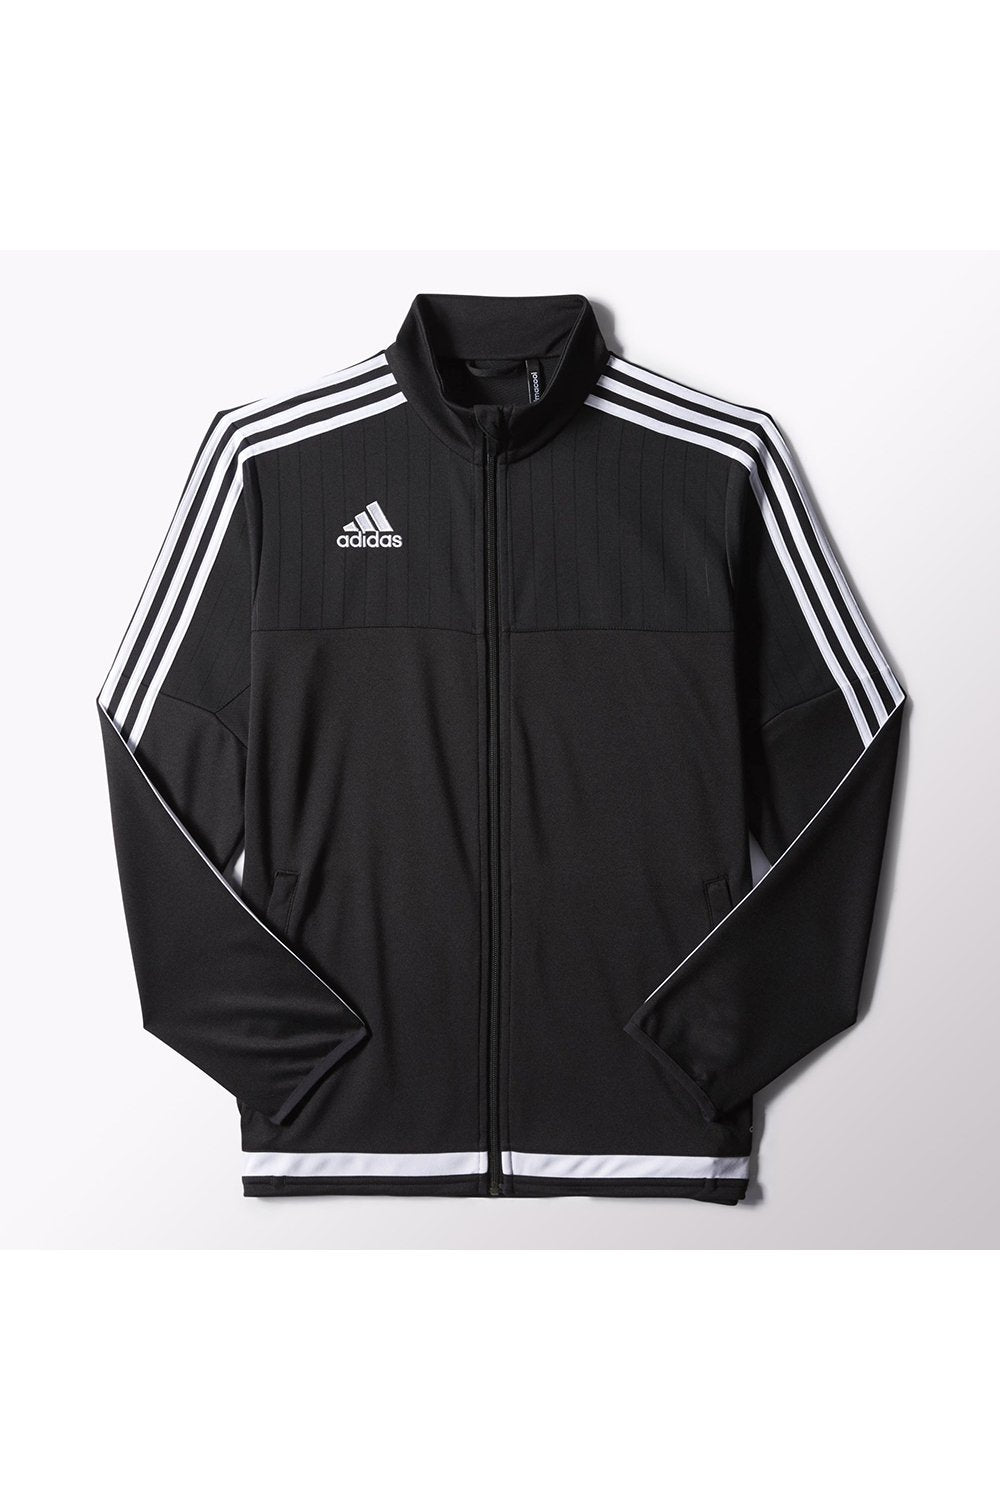 adidas Youth Soccer Tiro 15 Training Jacket S22330 Men